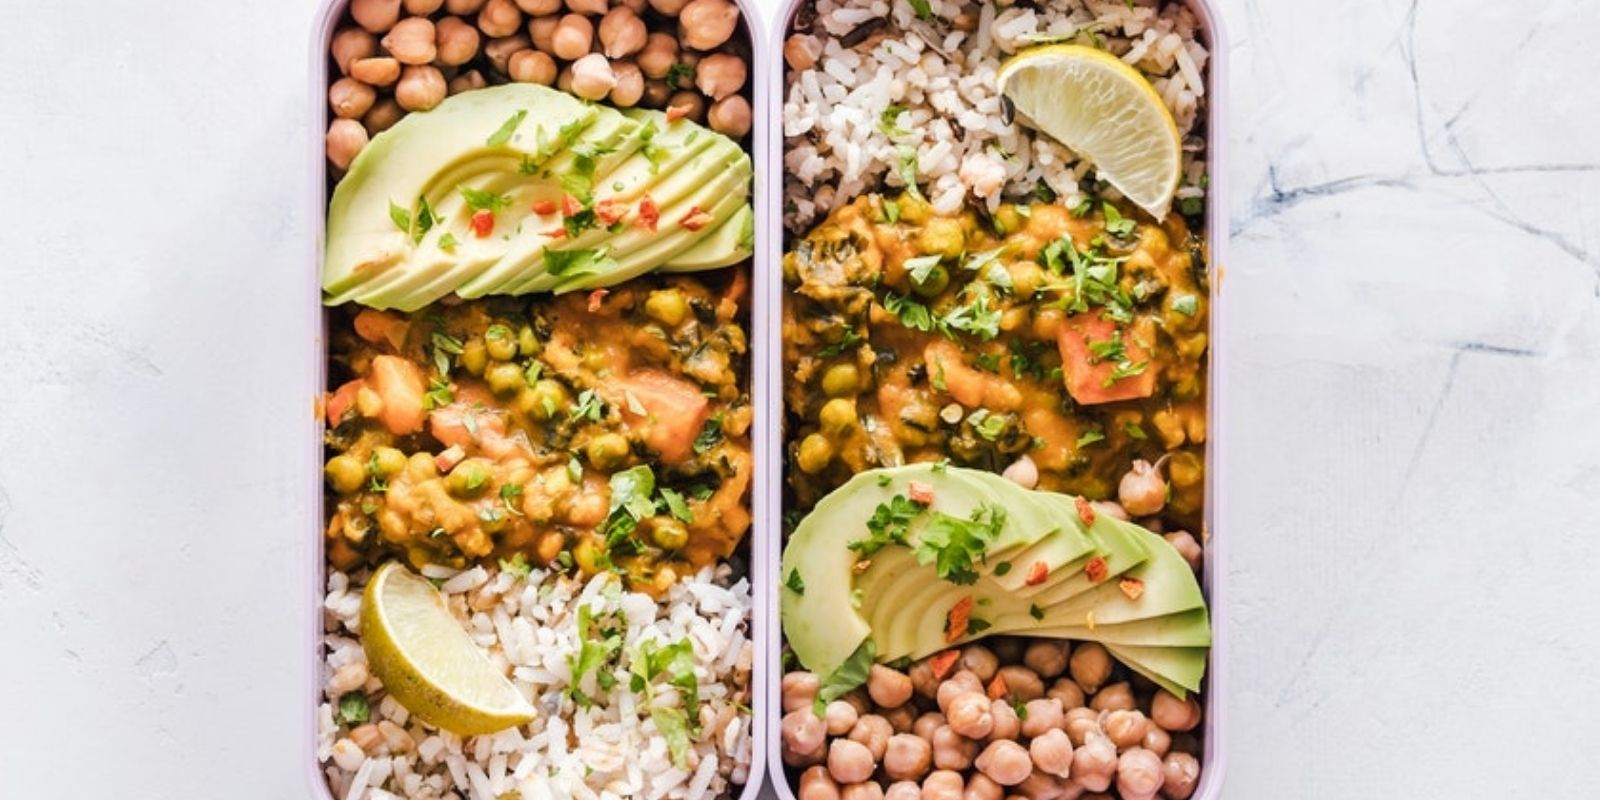 5 Easy Tips To Get Enough Protein On A Vegan Diet